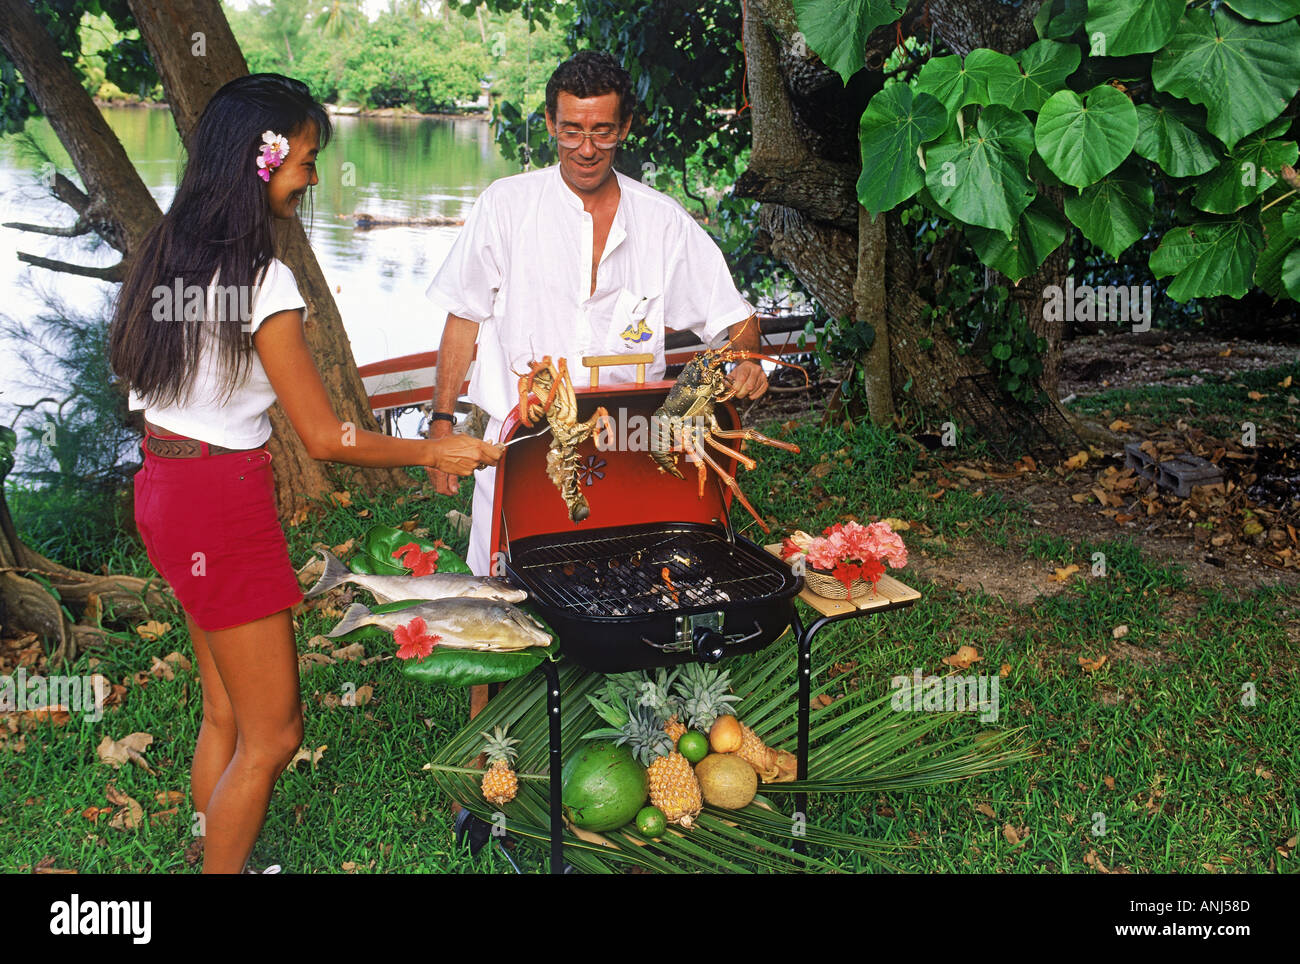 friends grilling lobster on backyard barbecue or grill in french